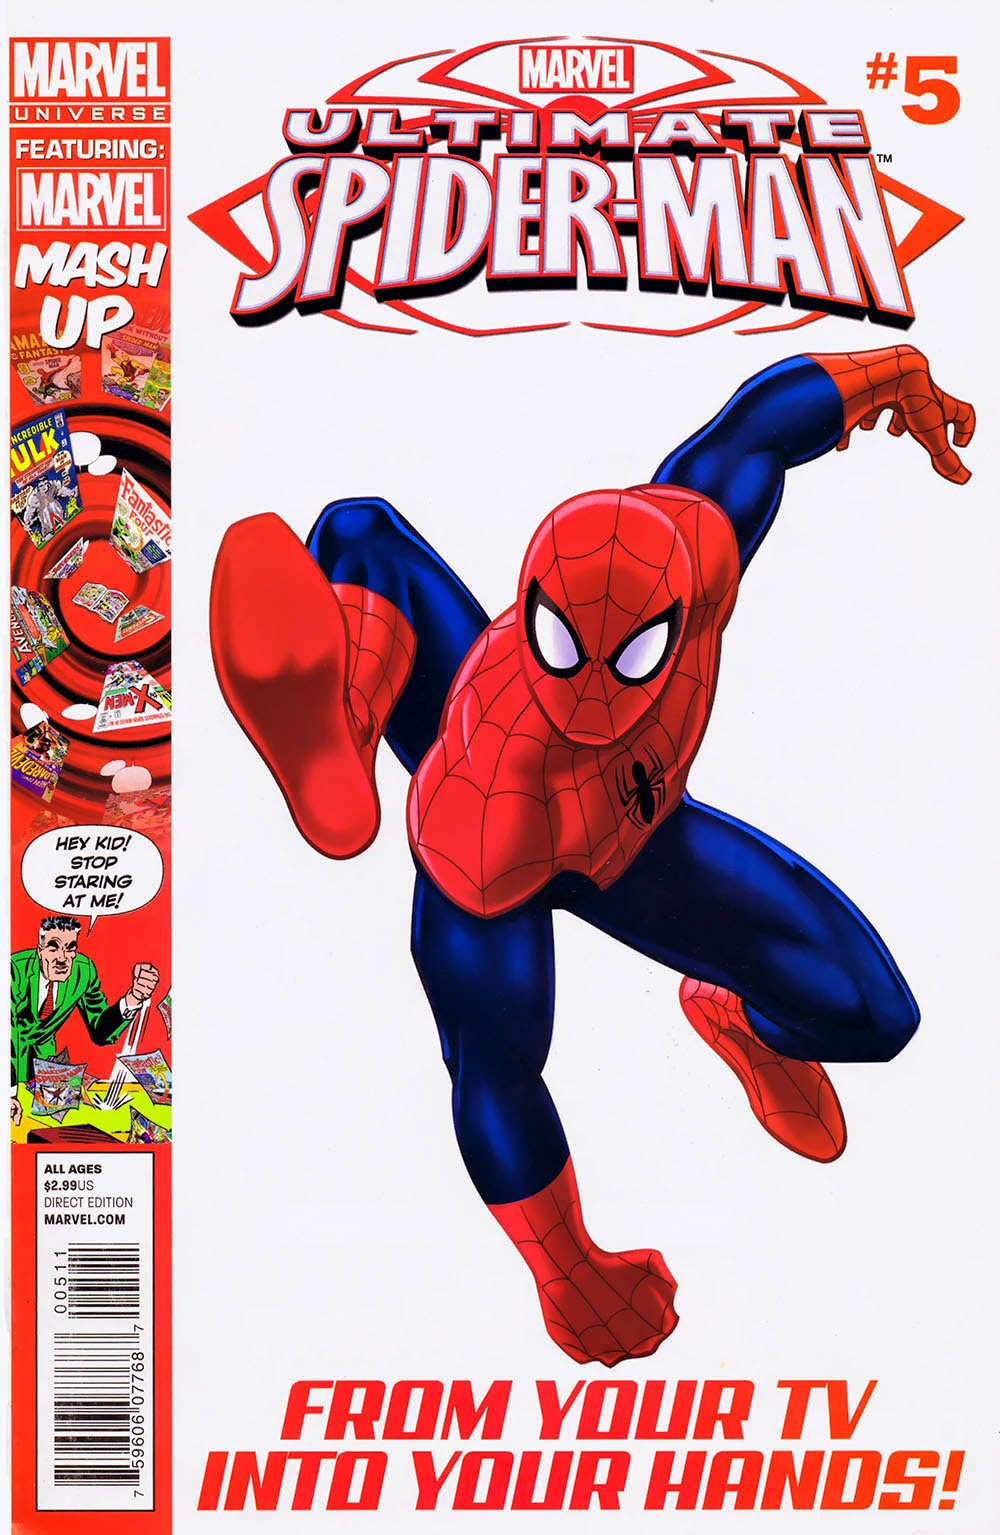 Marvel Universe: Ultimate Spider-Man Vol 1 5